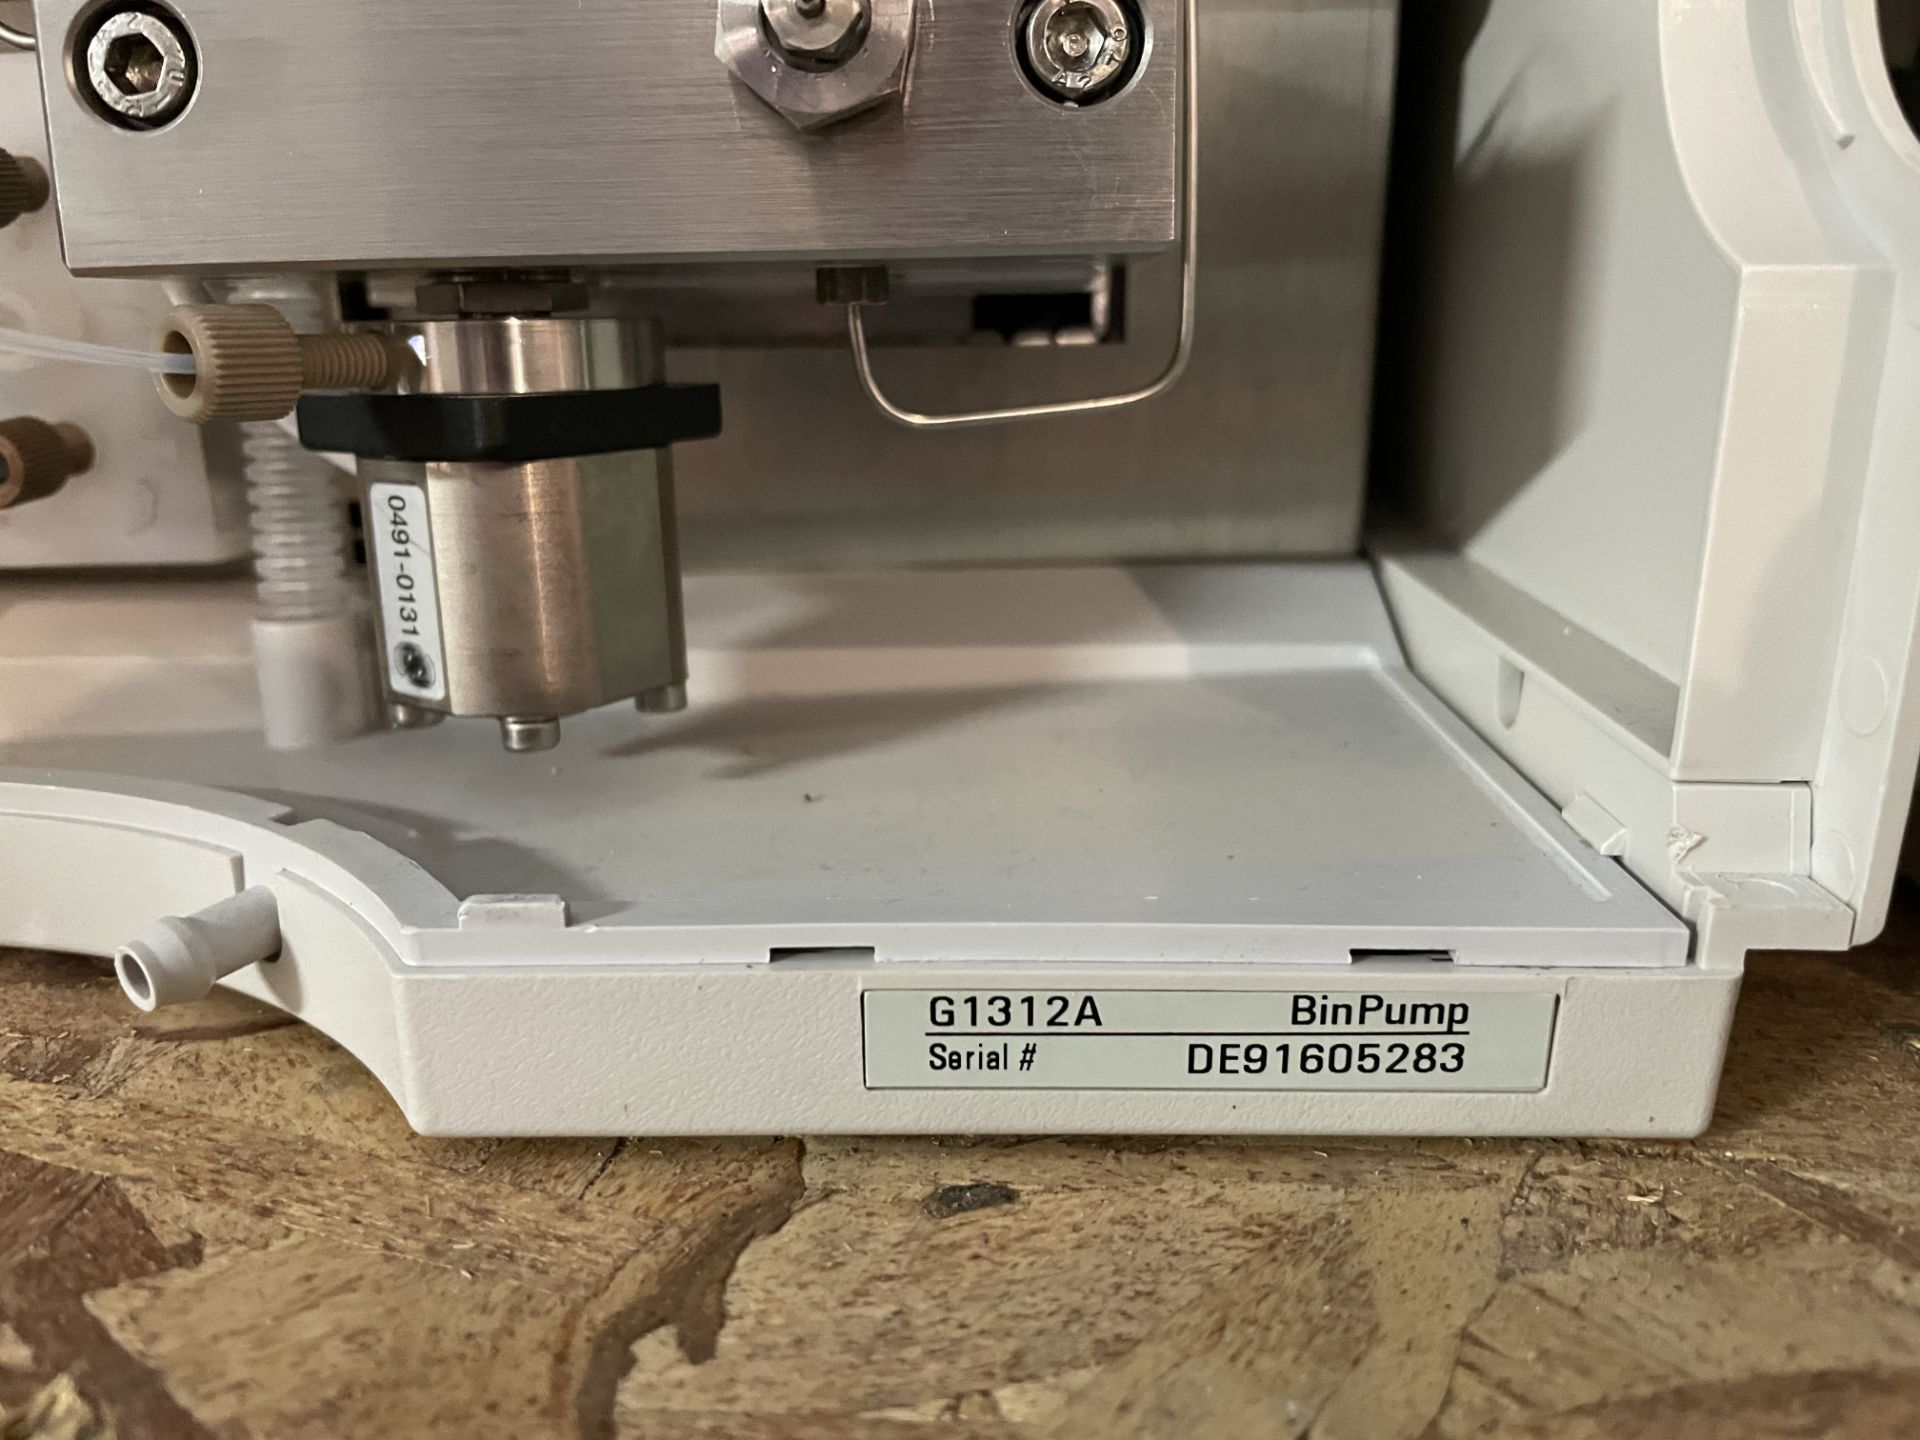 Used Agilent 1100 HPLC. Model 1100. Fully complete & functional cannabinoid potency testing system. - Image 6 of 22